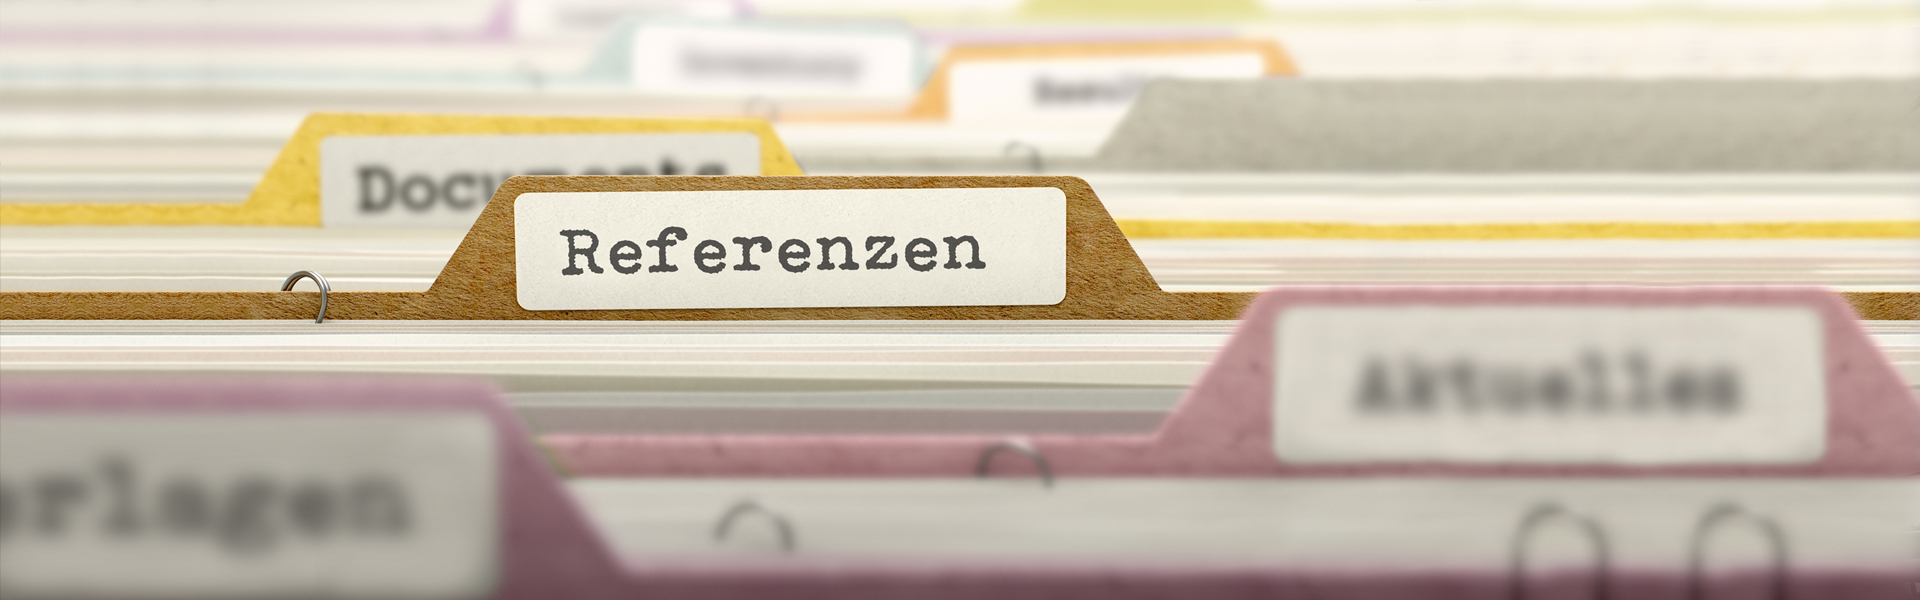 Header_Referenz Referenzen